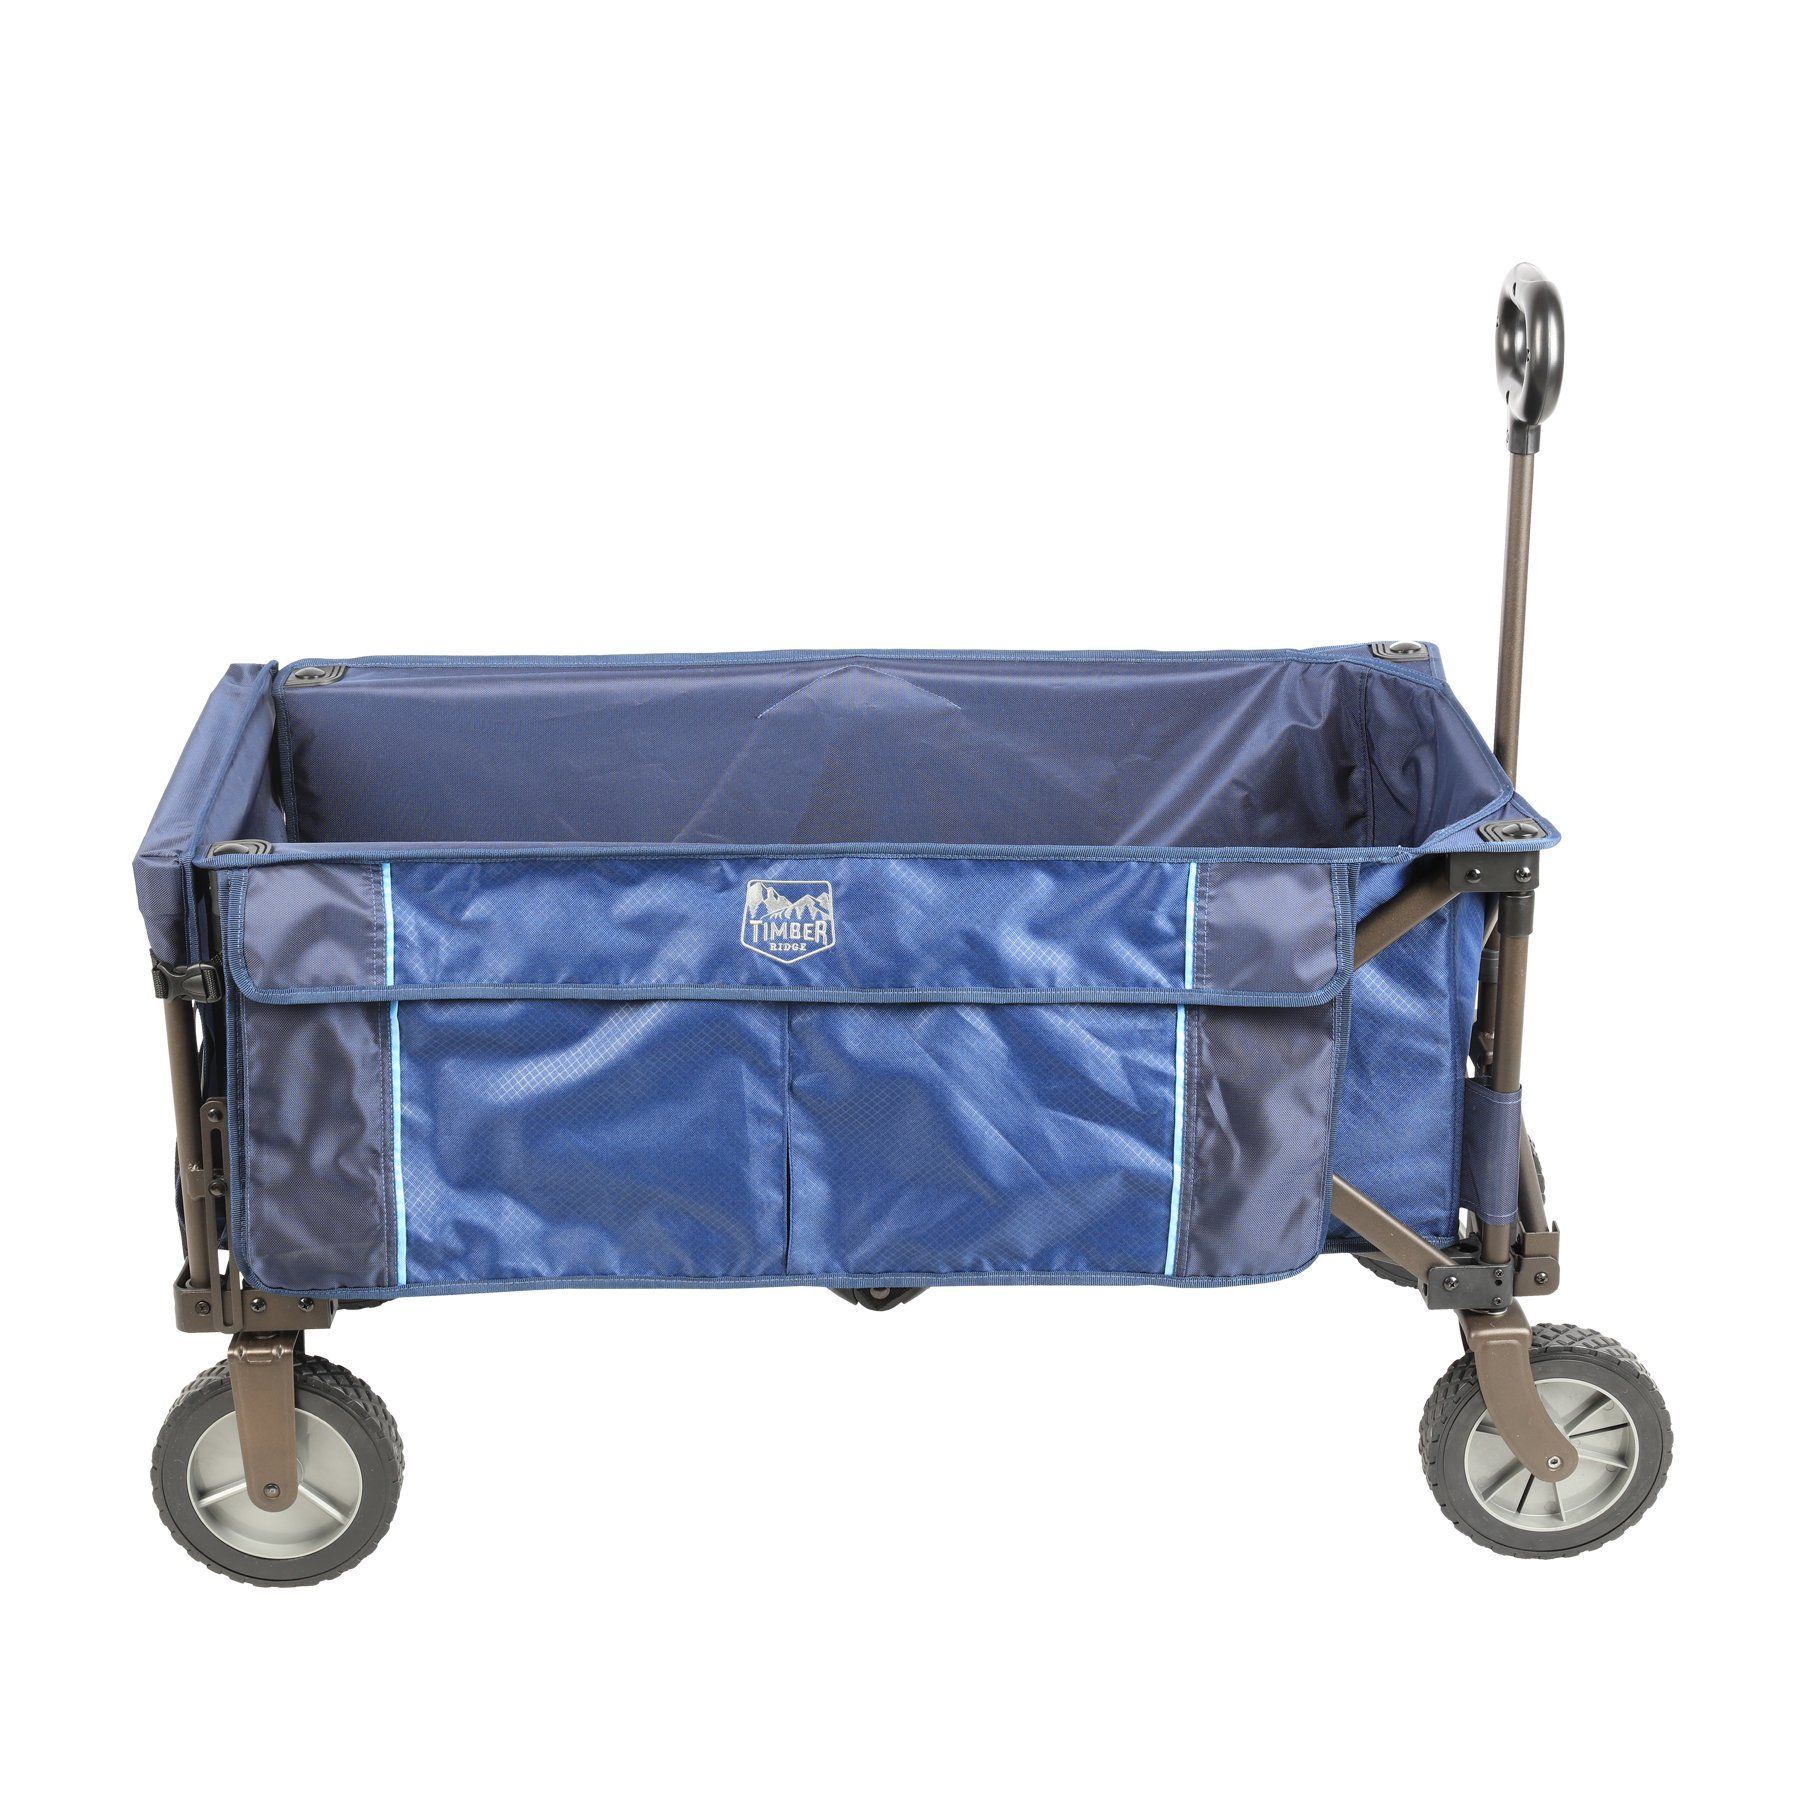 Timber Ridge Laburnum Tailgate Wagon